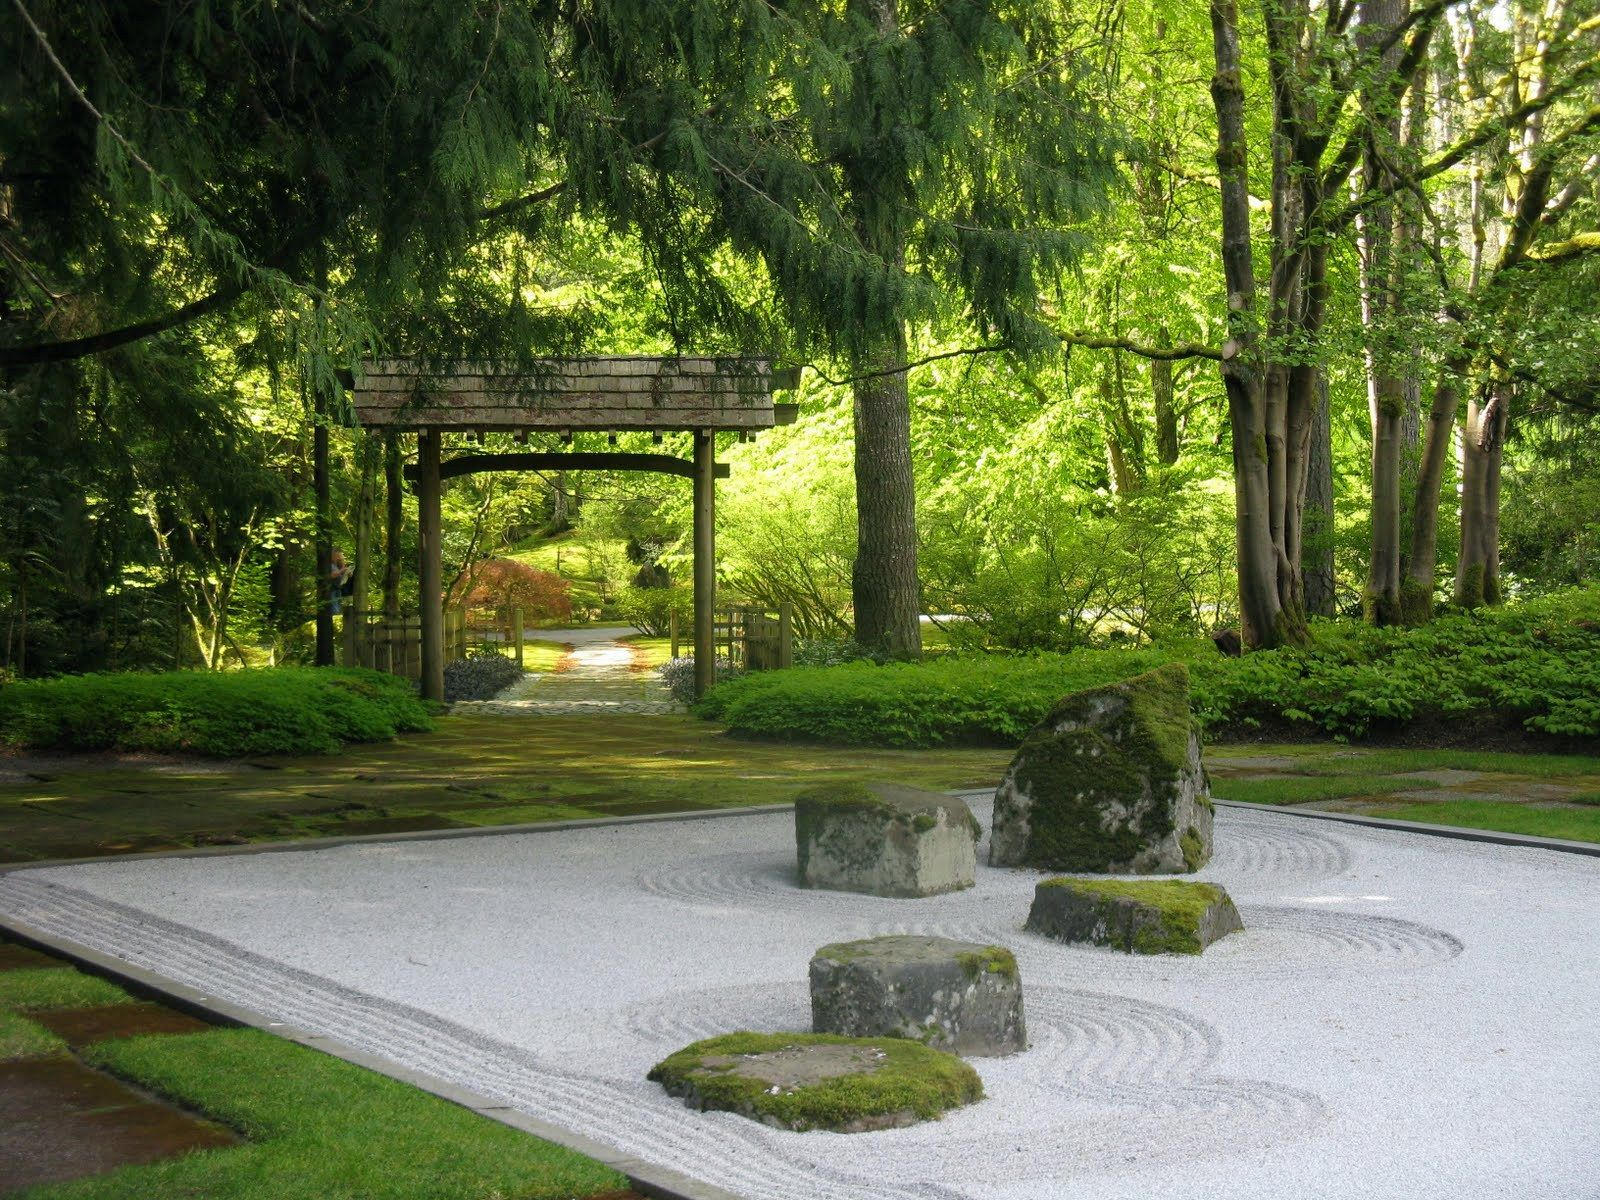 Are You Looking For A More Relaxing Backyard Design? Try Designing A  Japanese Zen Garden In Your Backyard To Ease Your Mind, And Rid Your Stress  While At ...